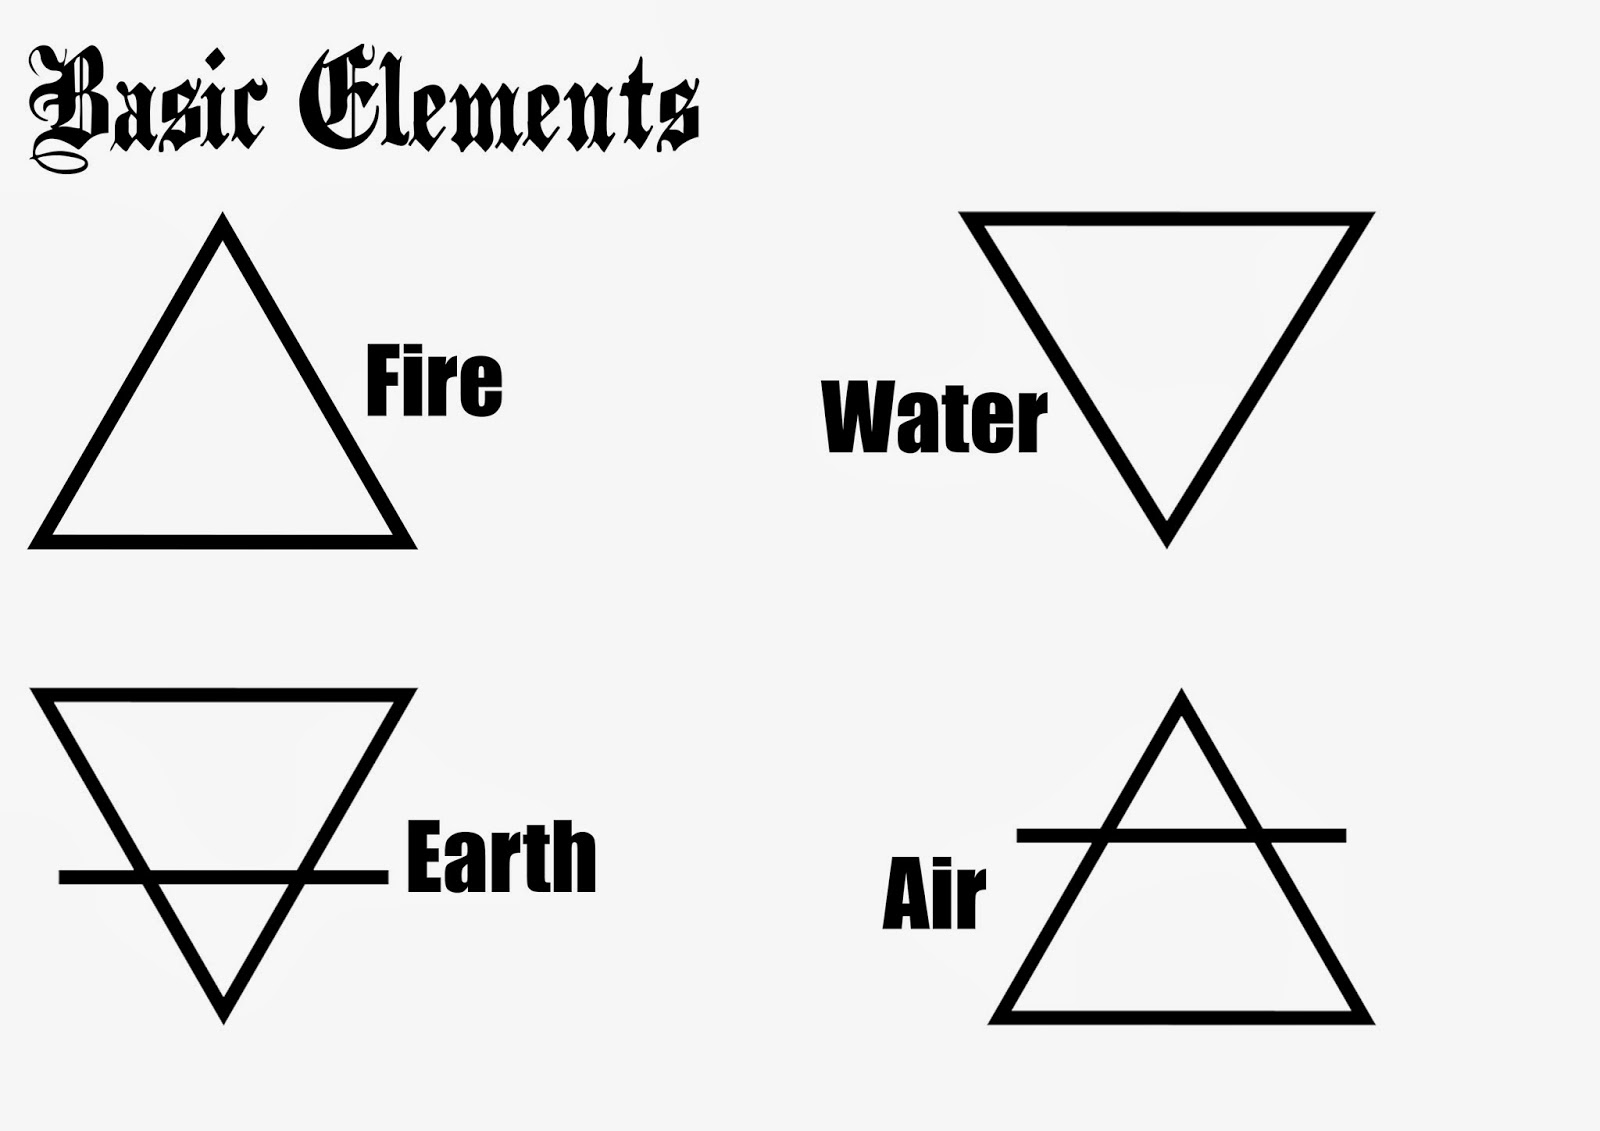 Symbol for water element choice image symbol and sign ideas luke mayes pva exam experiment alchemy and the elements experiment alchemy and the elements buycottarizona biocorpaavc